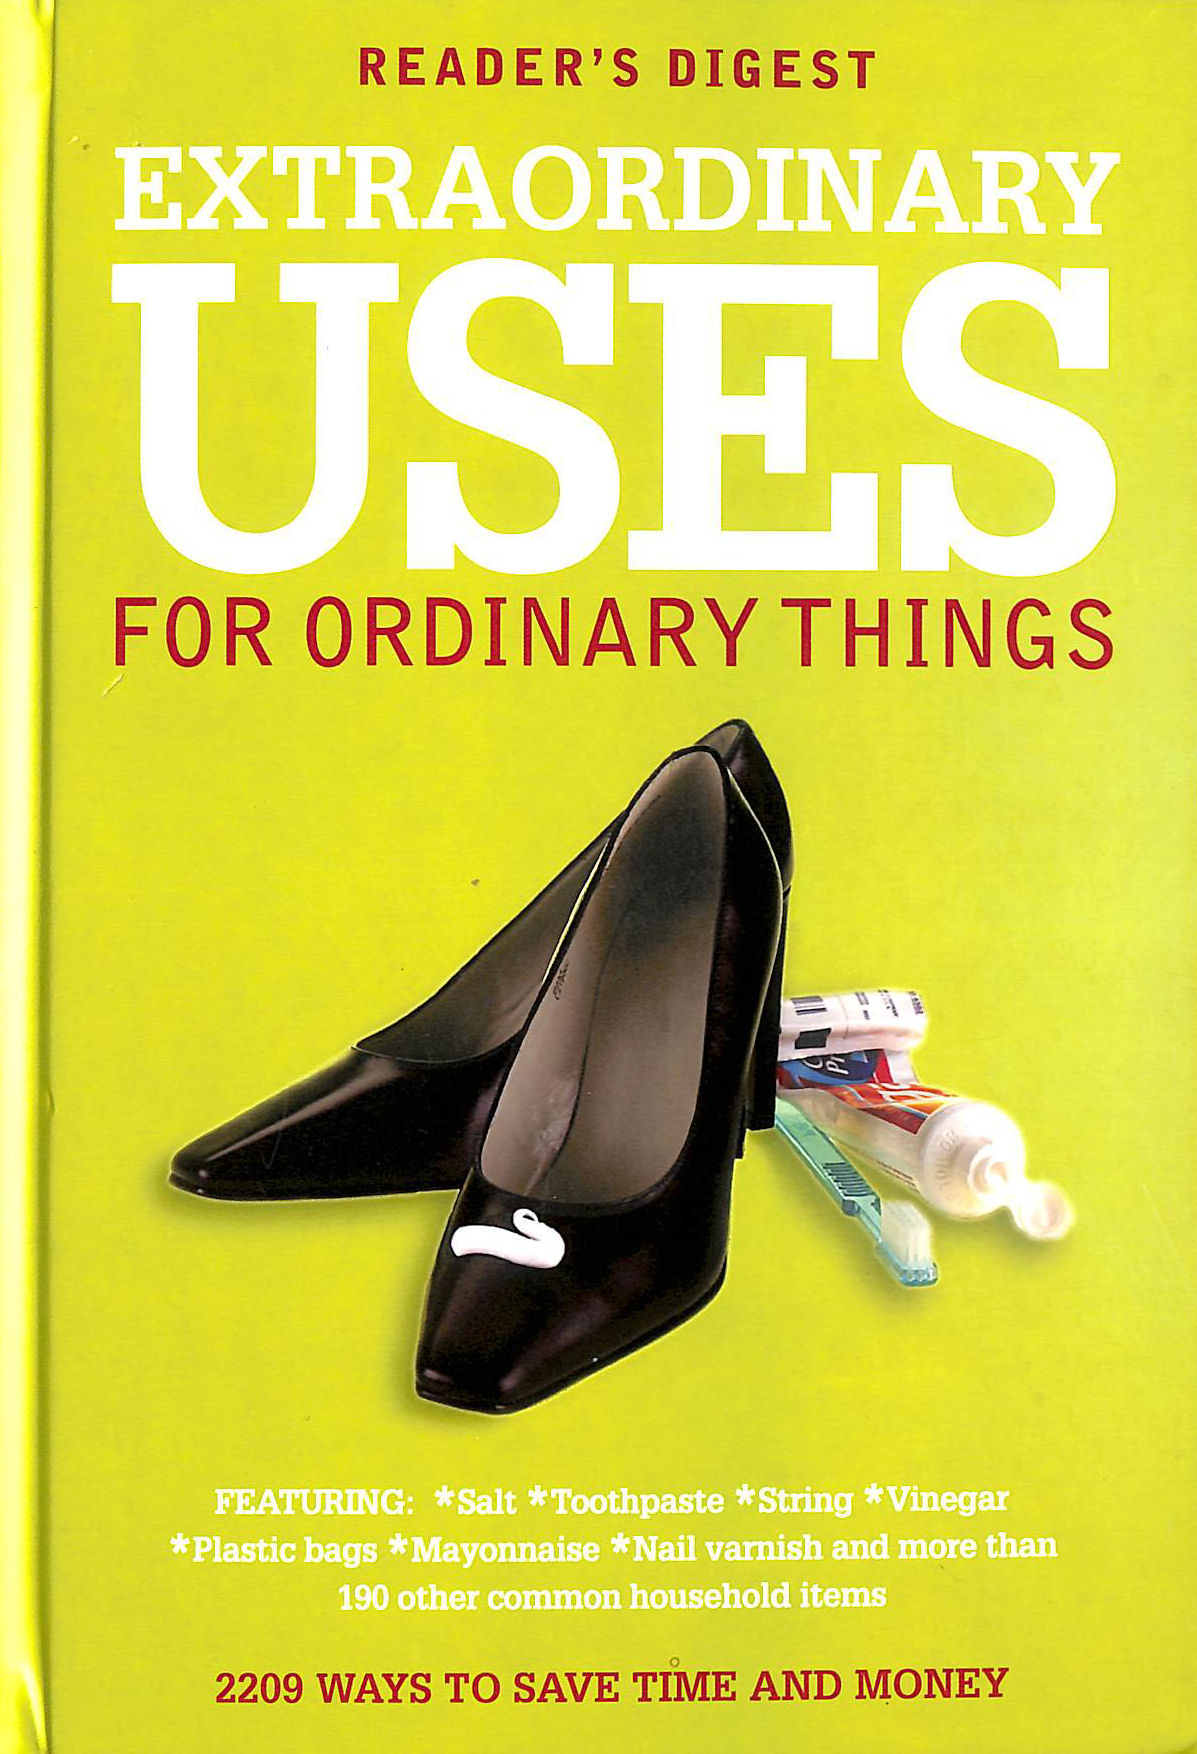 Image for Extraordinary Uses for Ordinary Things: 2, 209 Ways to Save Money and Time (Readers Digest)